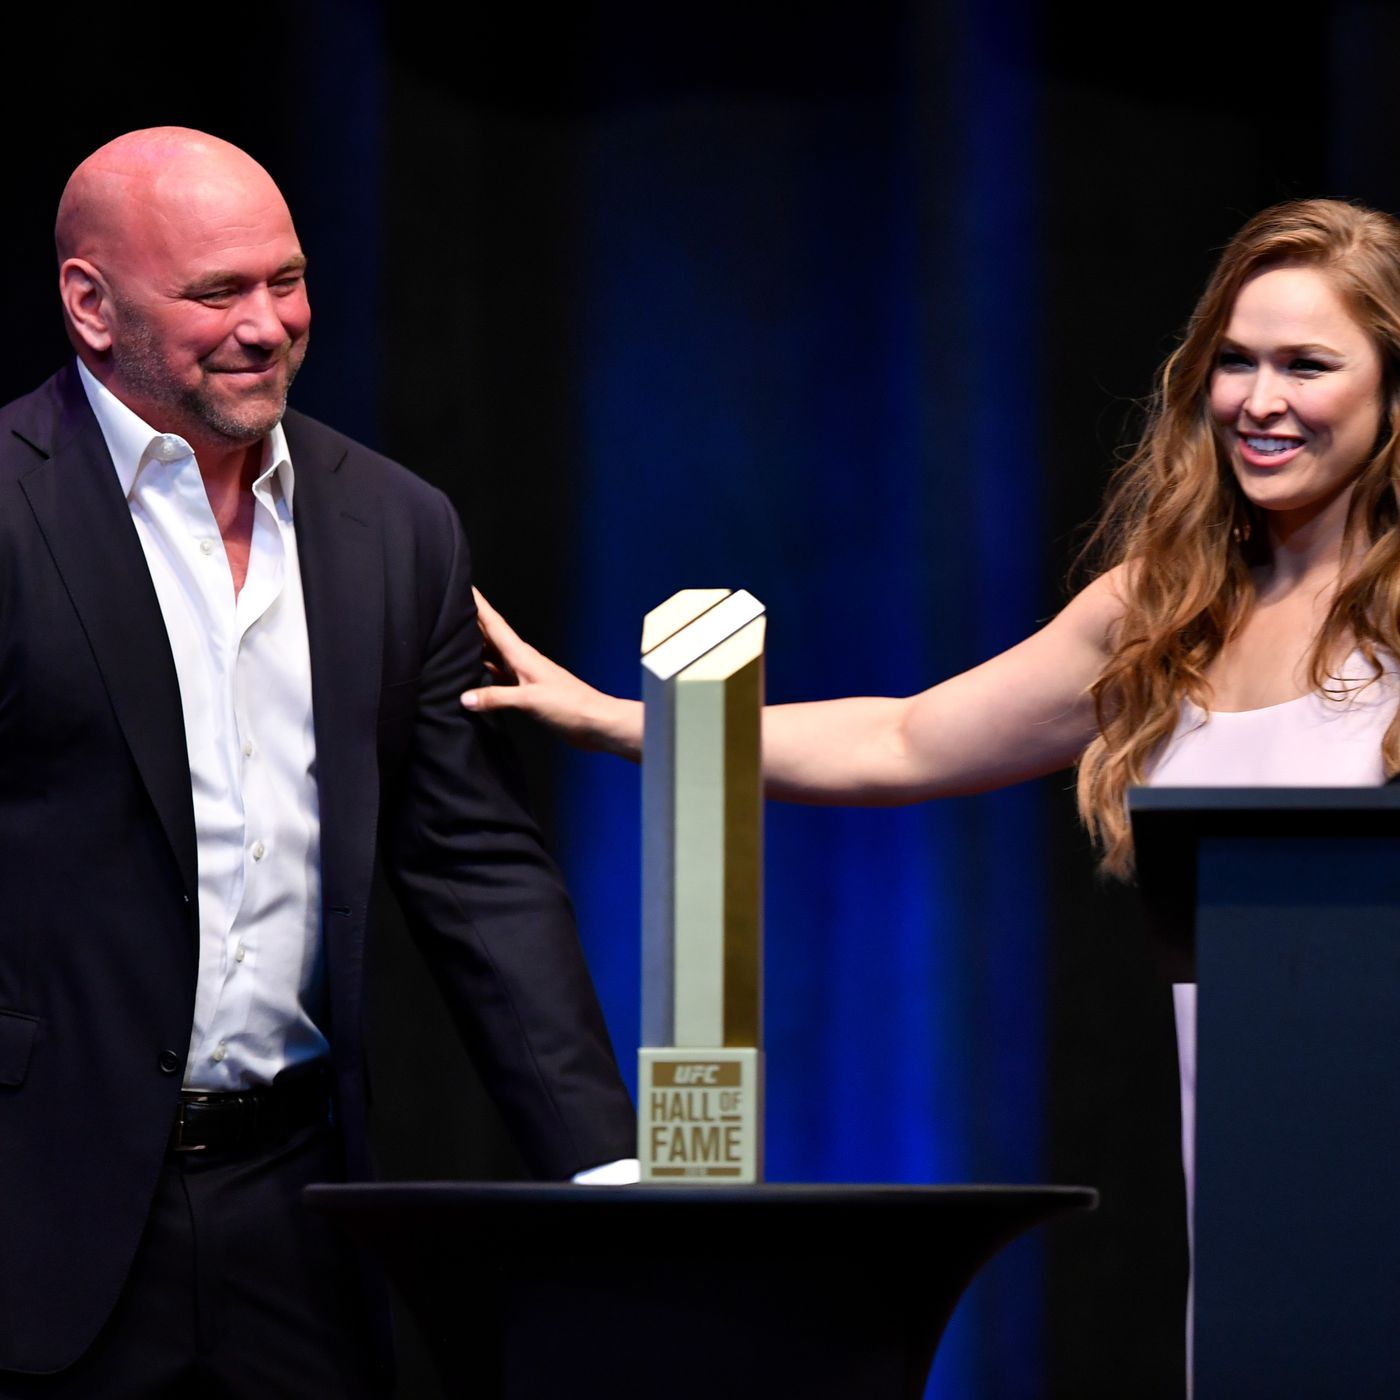 Dana White and Ronda Rousey grabbed $150k in cash and tried to spring Jeremy Stephens from jail in 2012